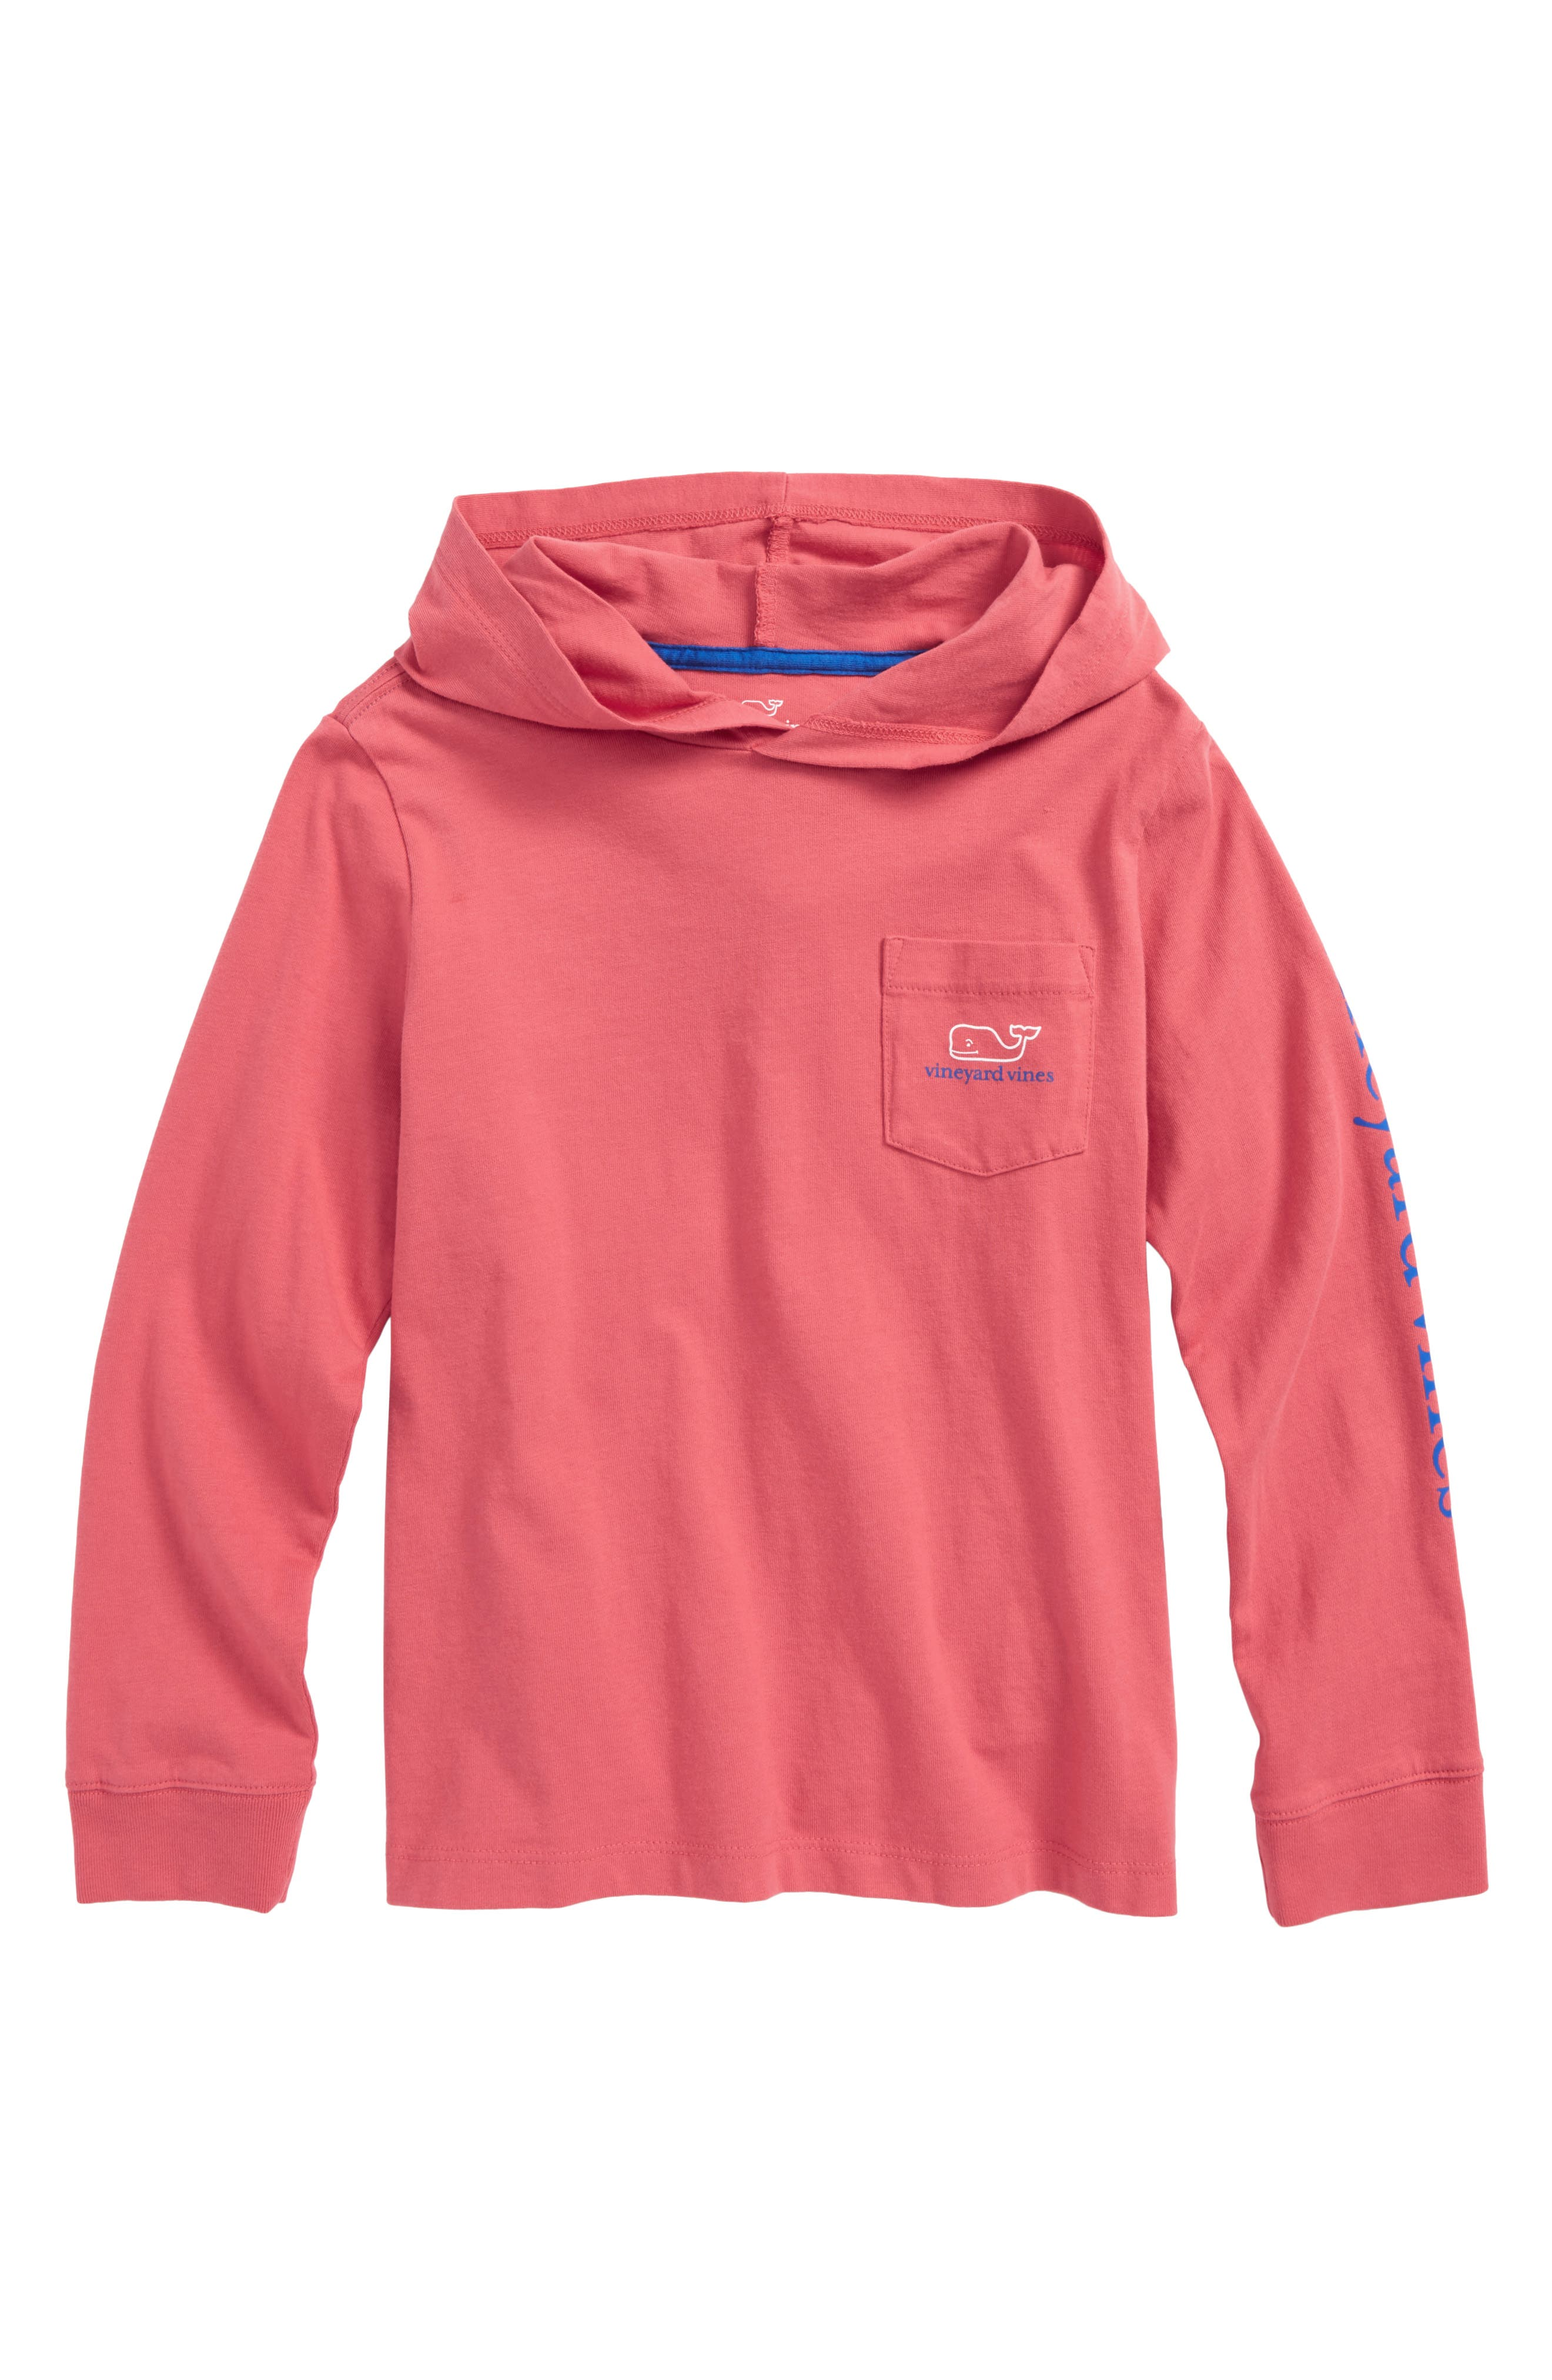 Main Image - vineyard vines Two-Tone Whale Hooded T-Shirt (Toddler Boys & Little Boys)